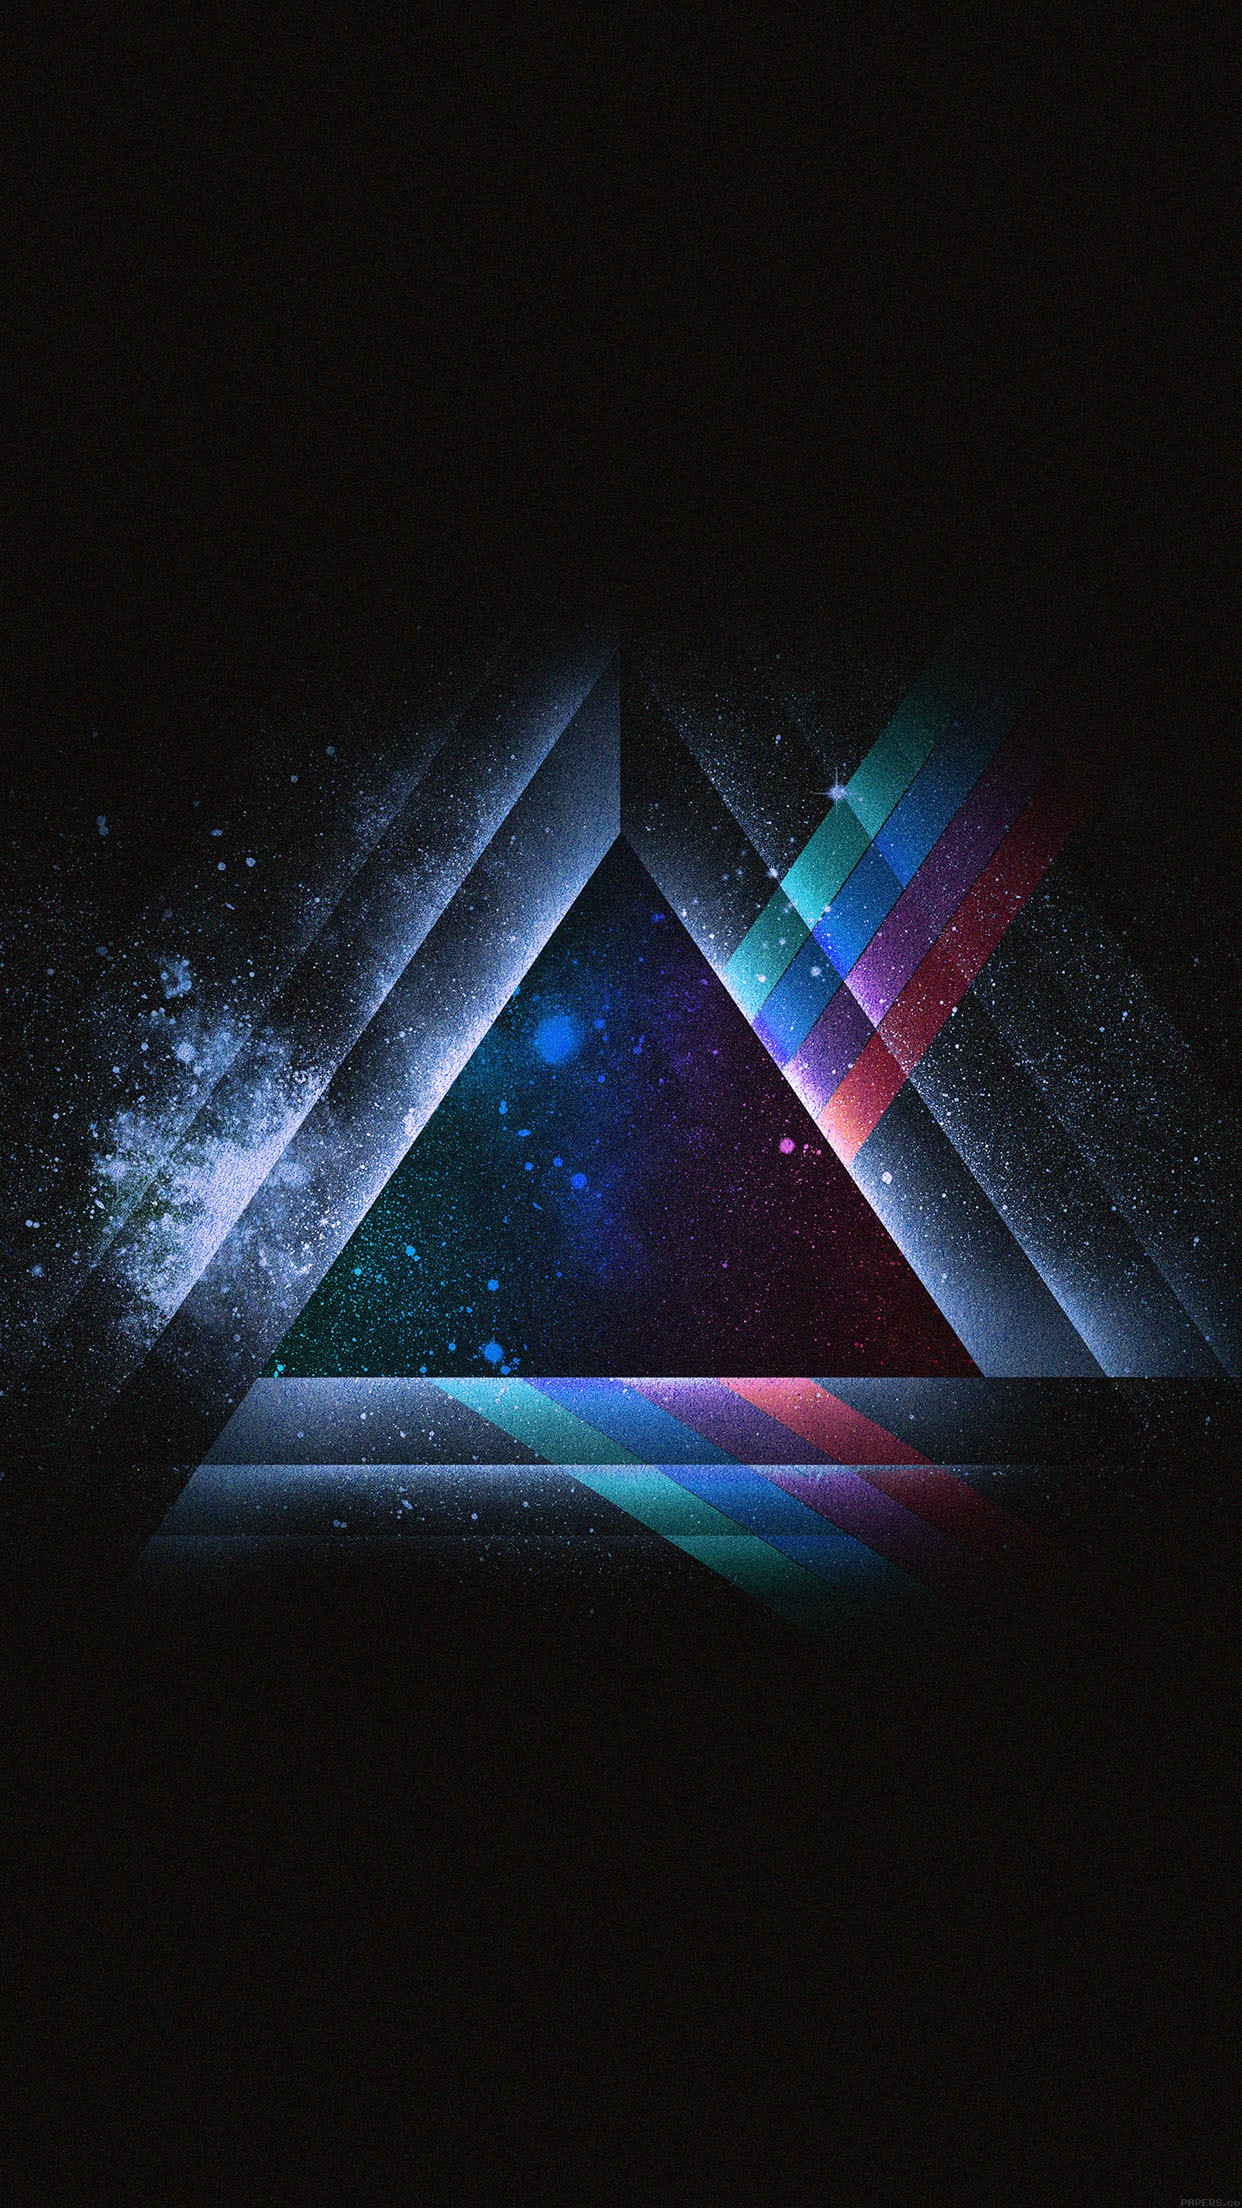 illuminati triangle wallpaper hd - photo #13